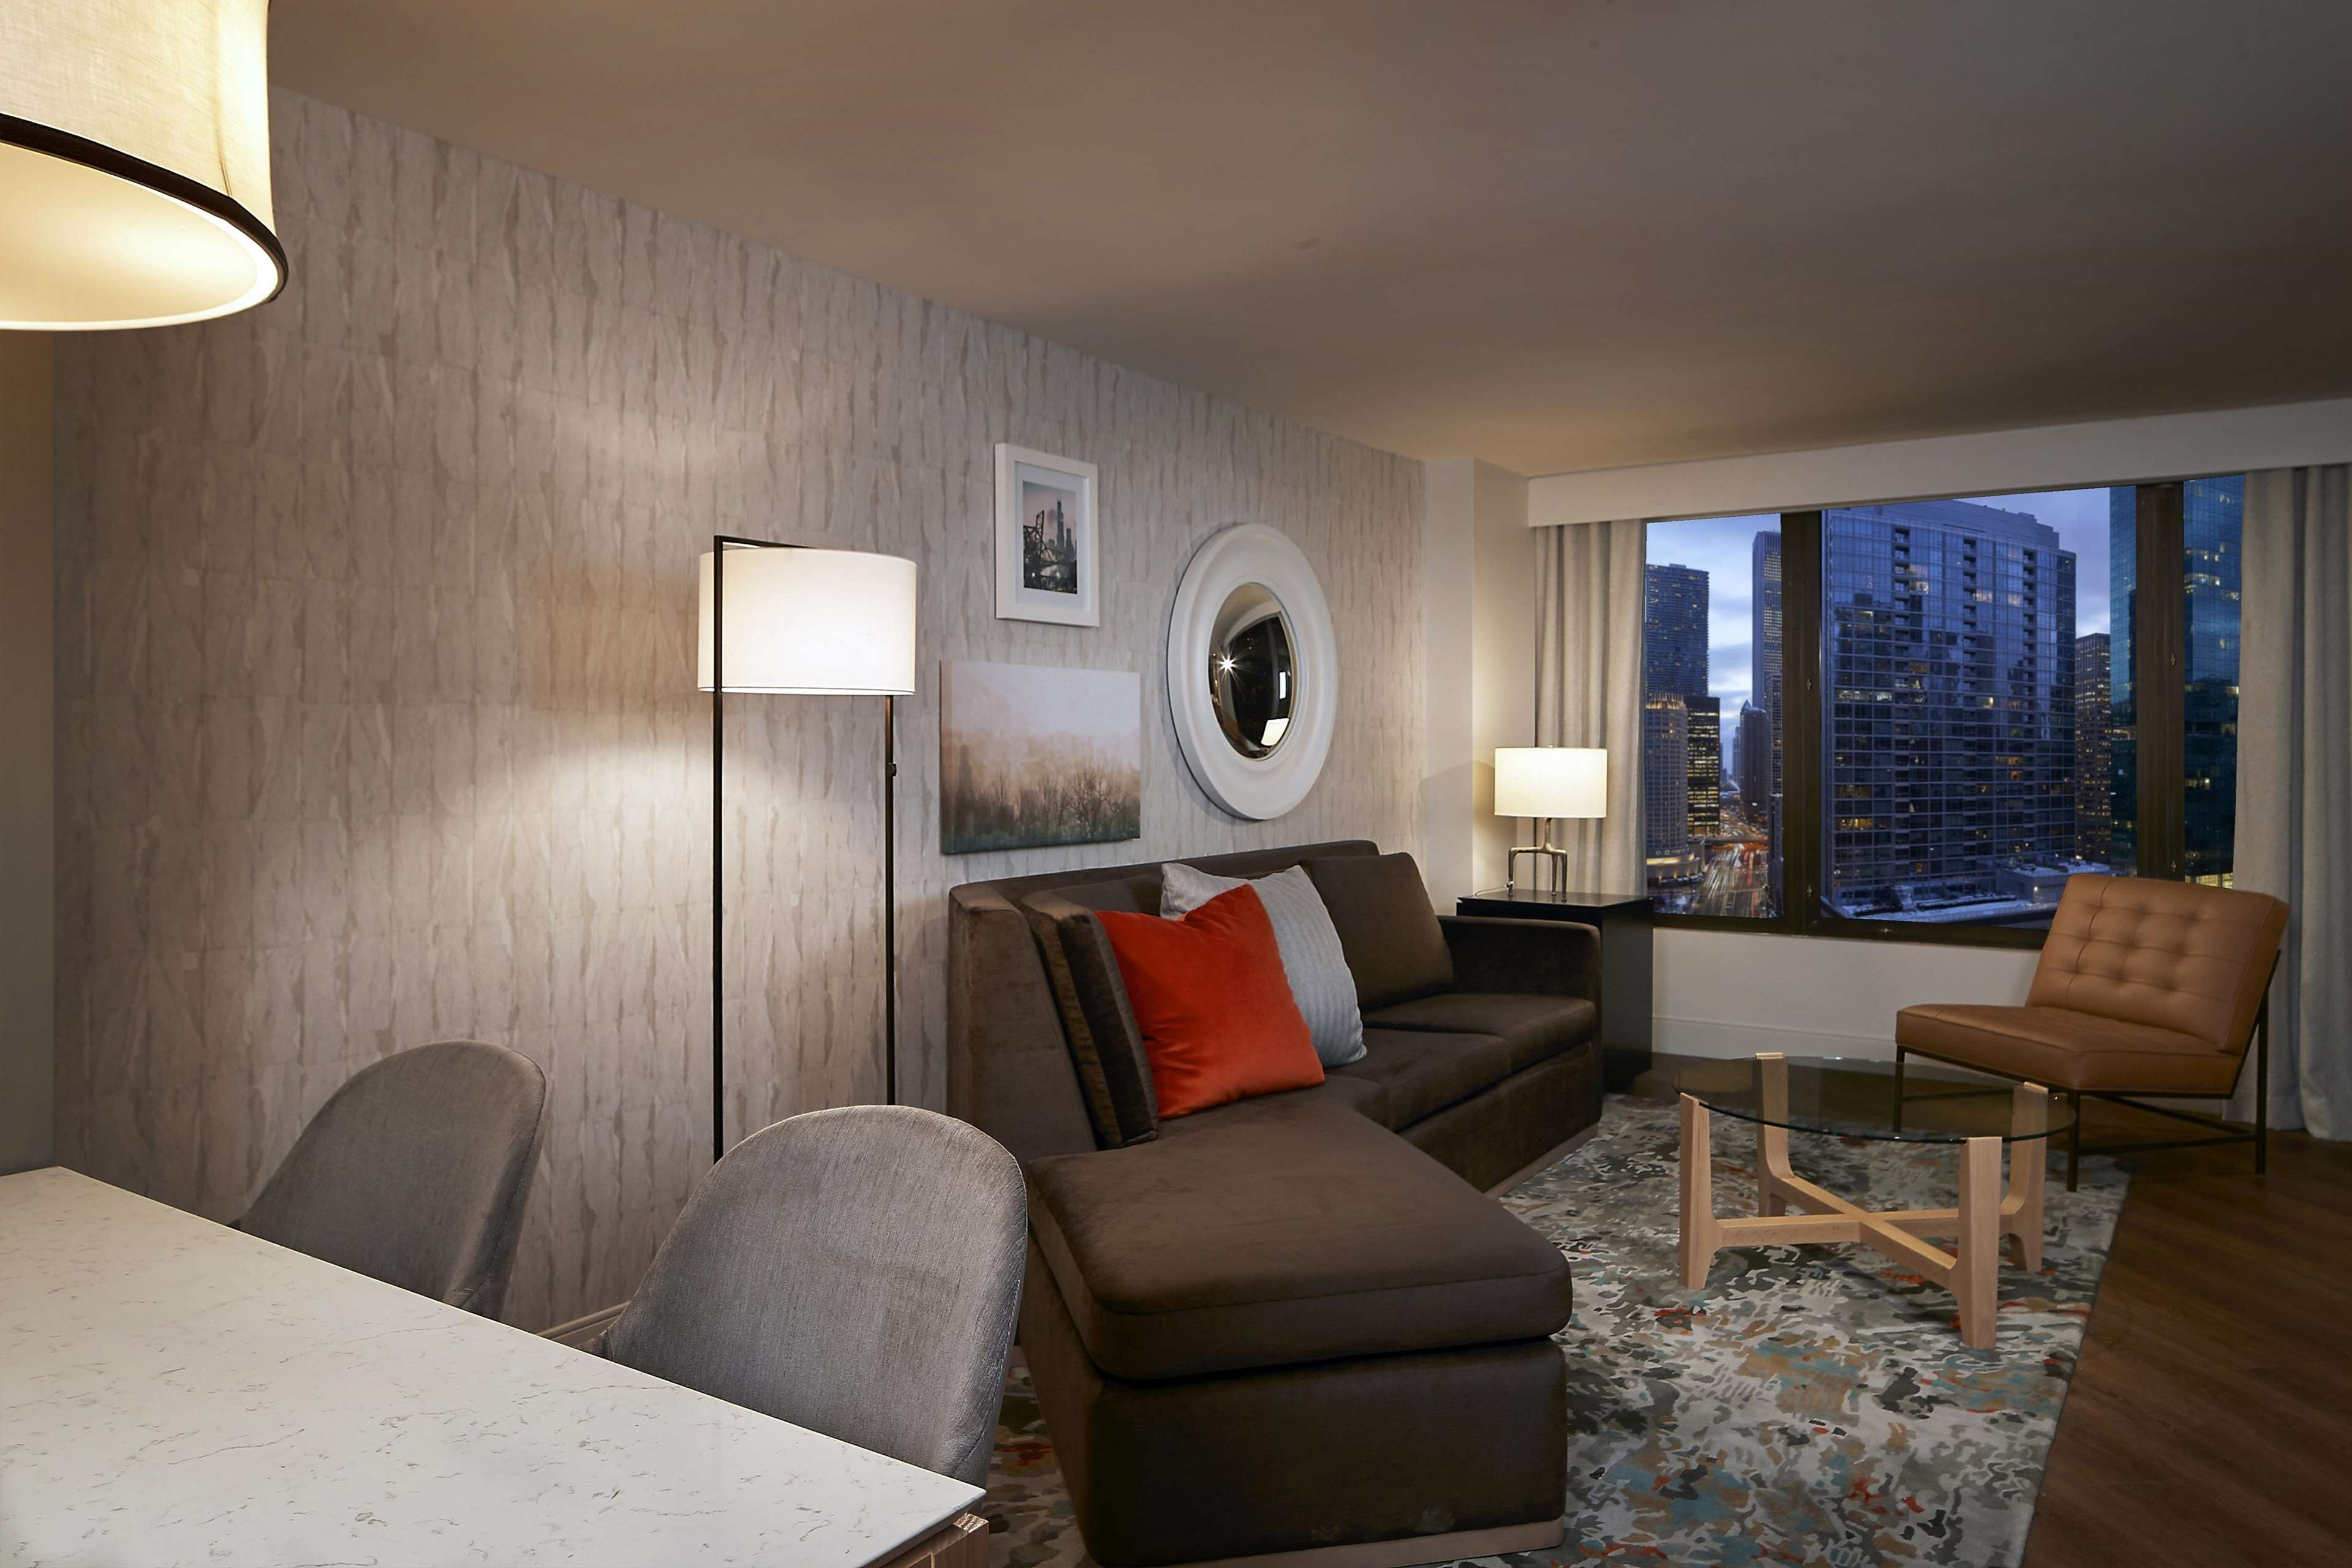 Hilton Grand Vacations Chicago Downtown Magnificent Mile image 7